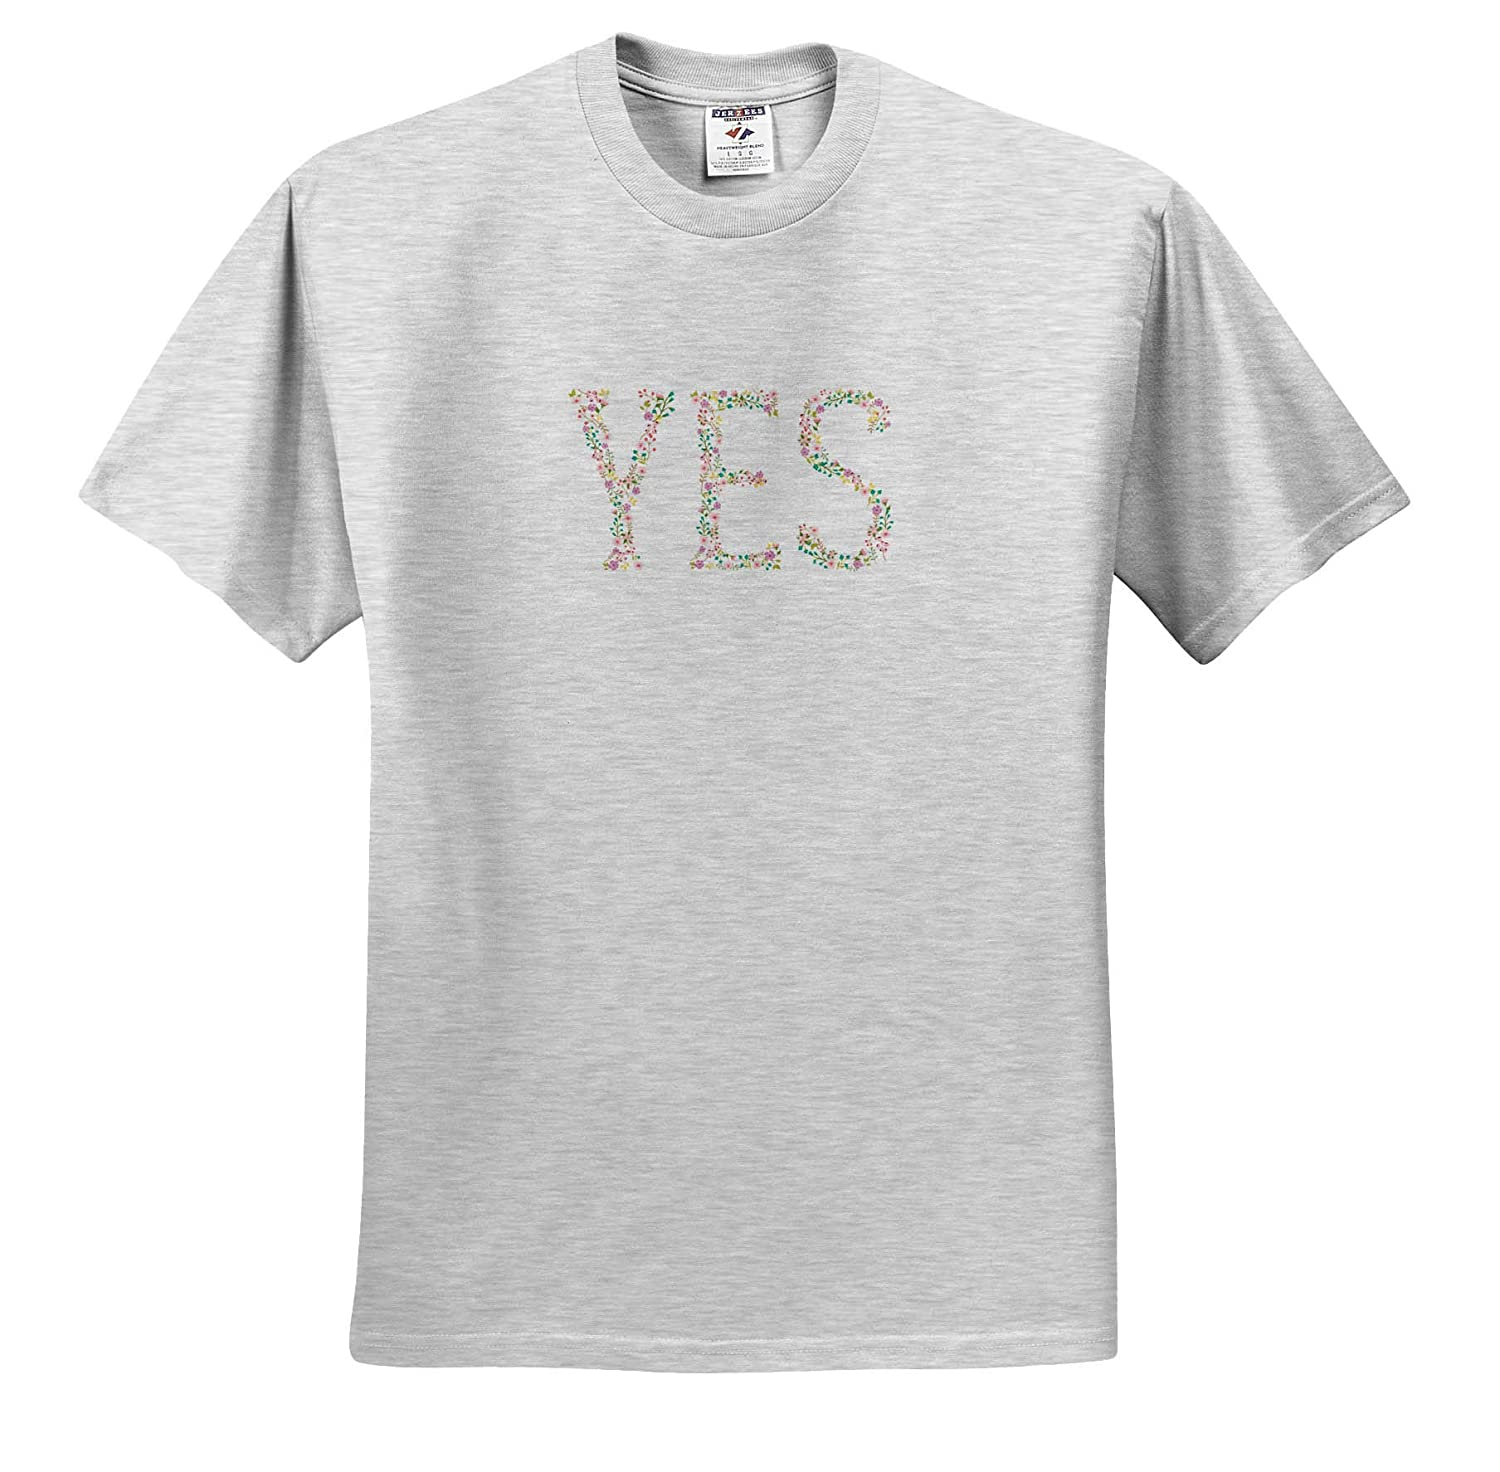 Each Letter Made of Flowers Positive Text Yes Pastel Colors T-Shirts 3dRose Alexis Design Flowers Text